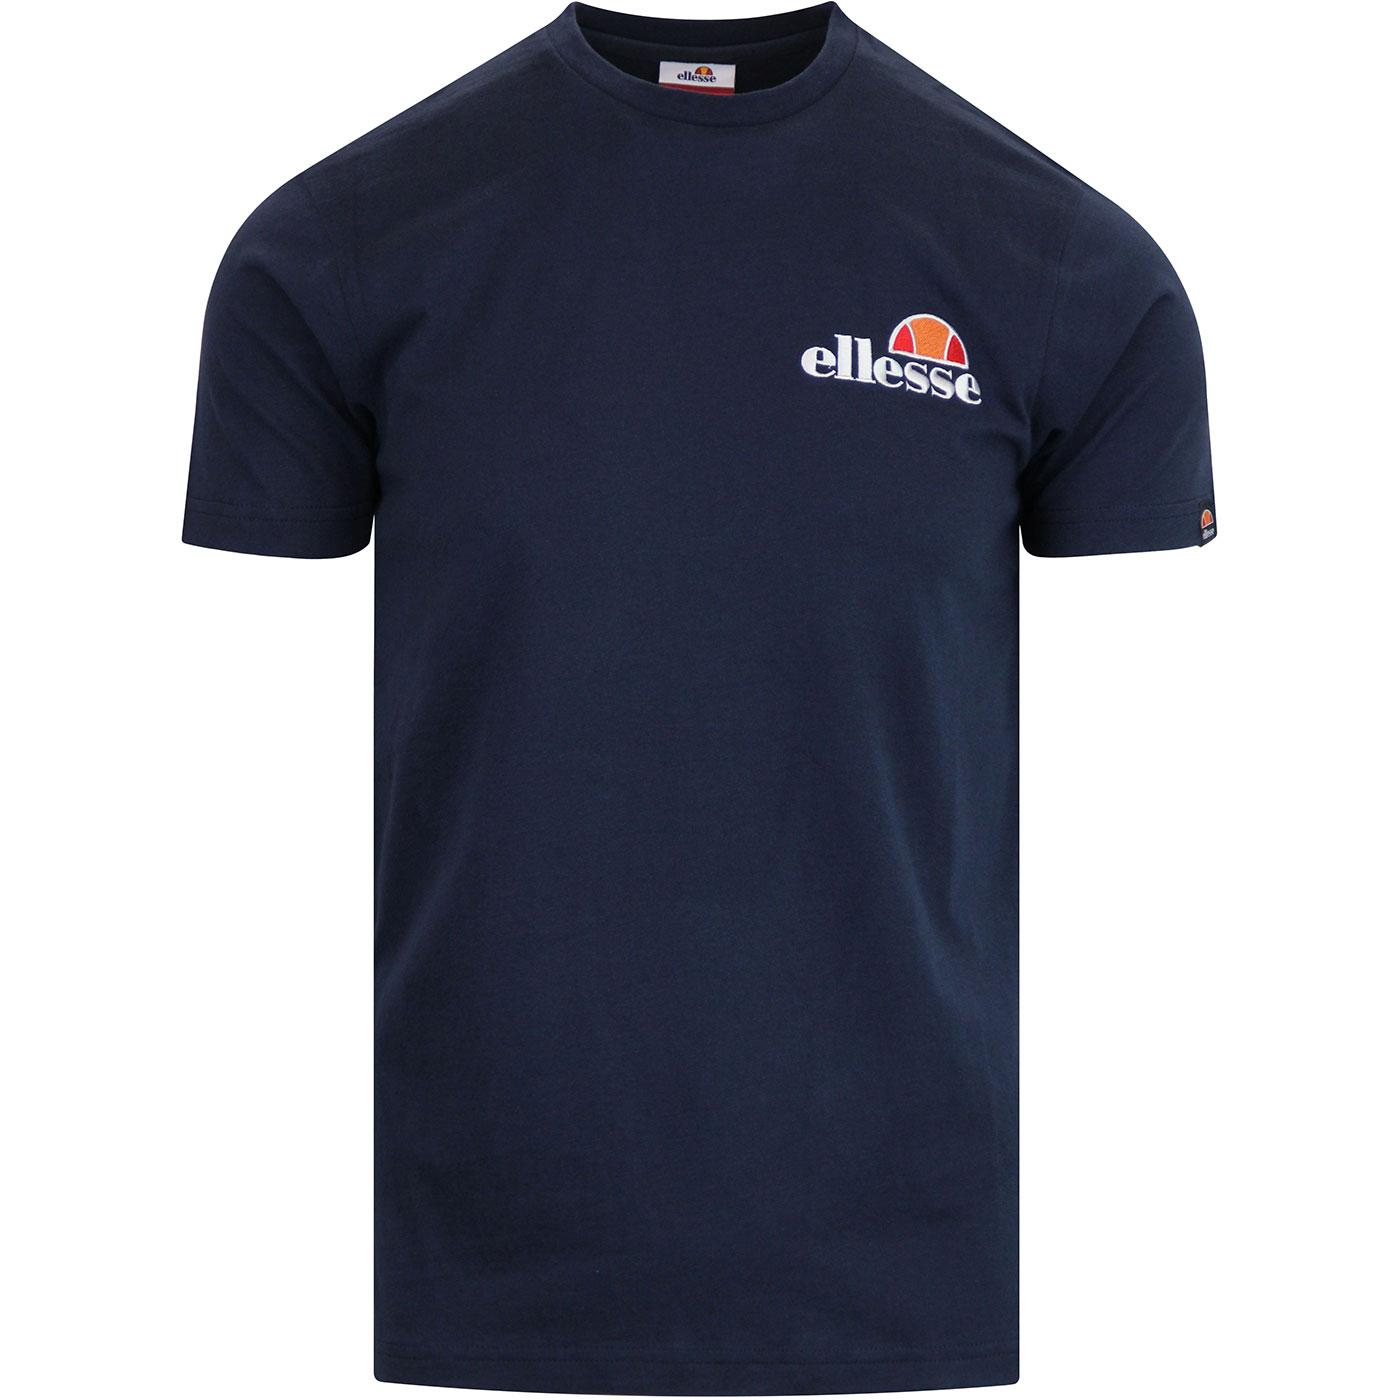 Voodoo ELLESSE Men's Retro Casuals Logo Tee (Navy)